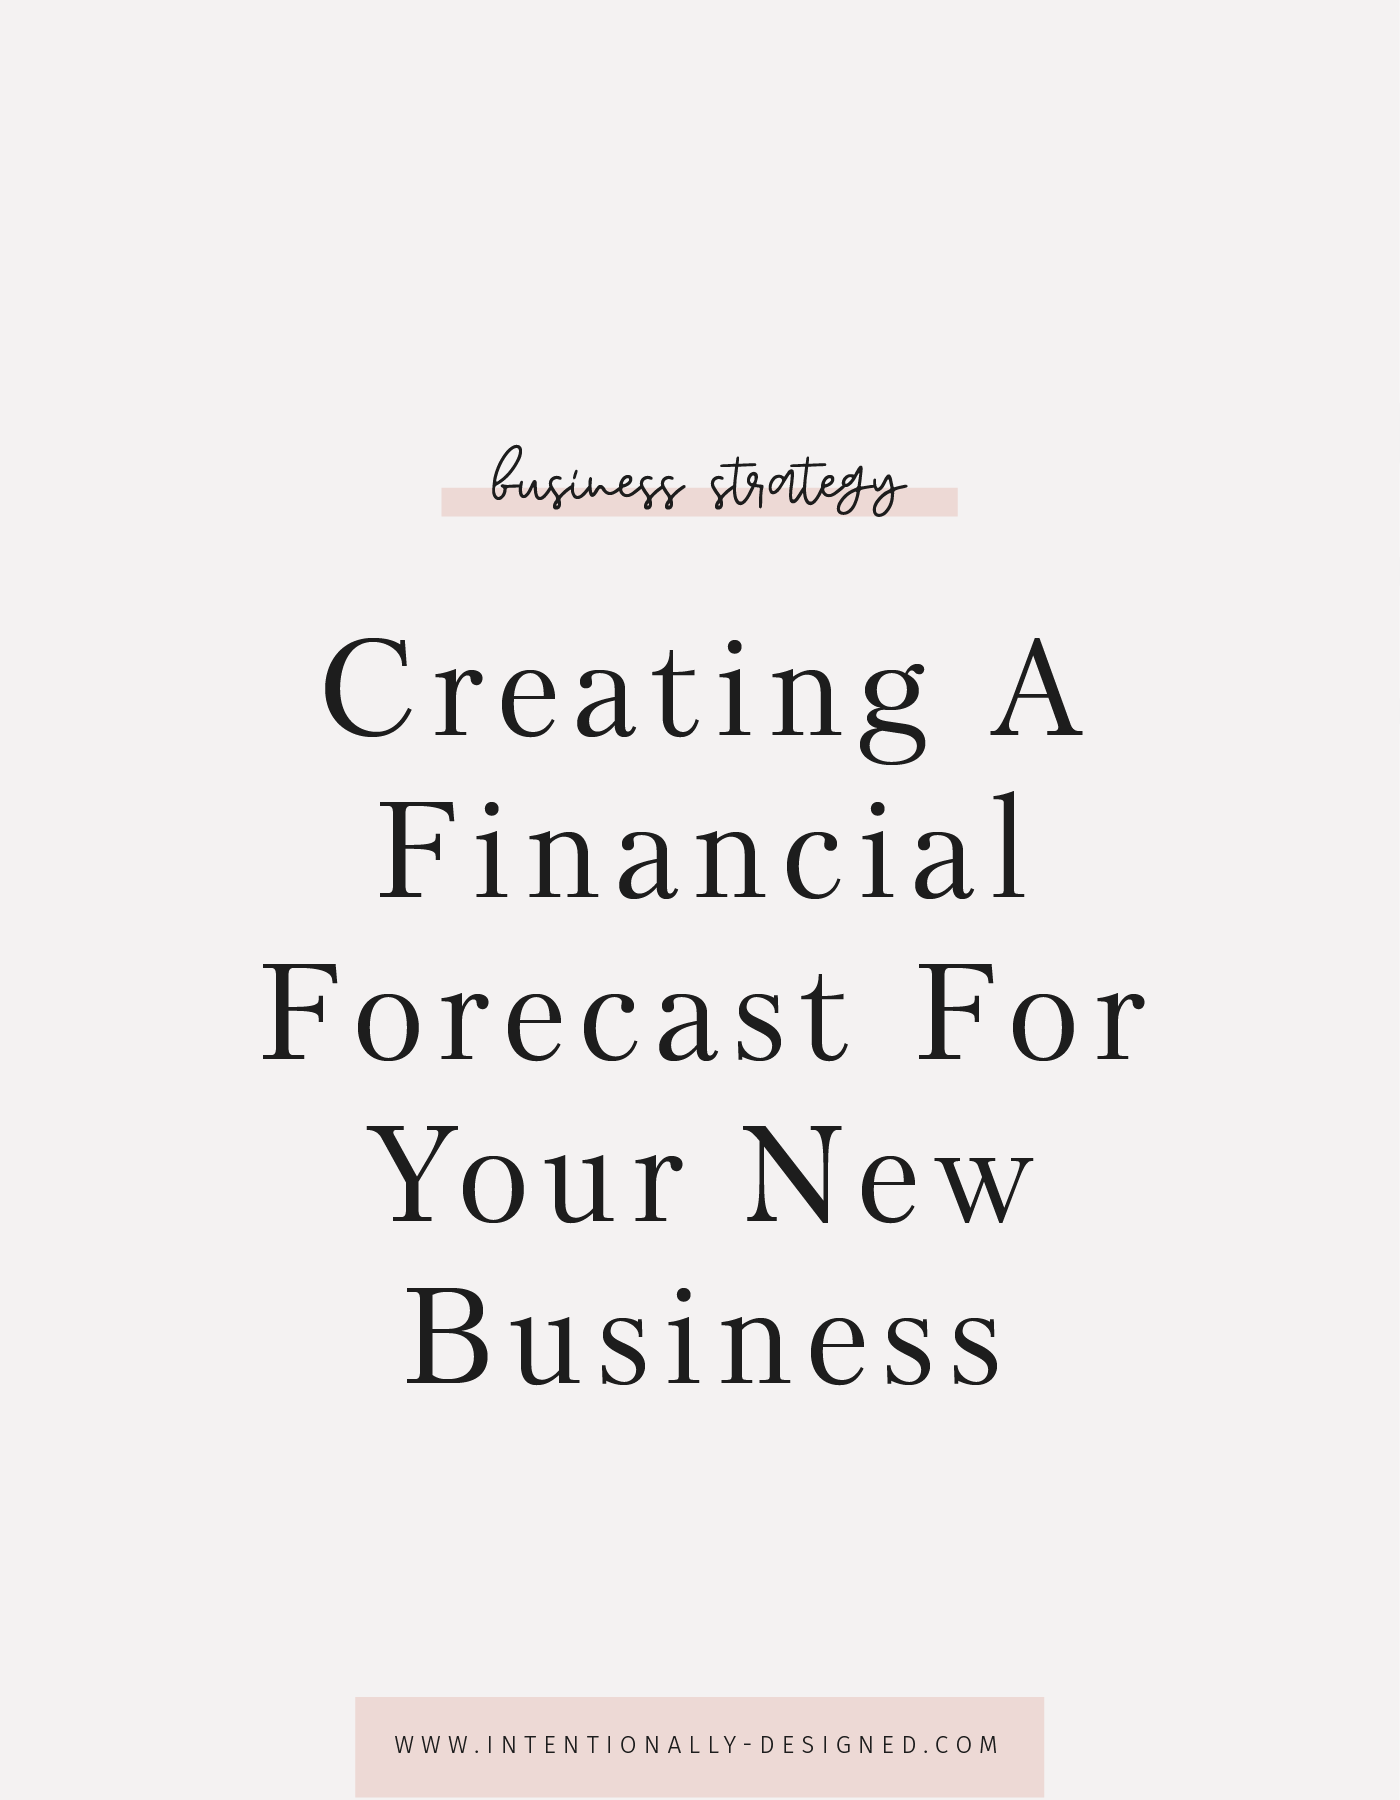 Creating A Financial Forecast For Your New Business